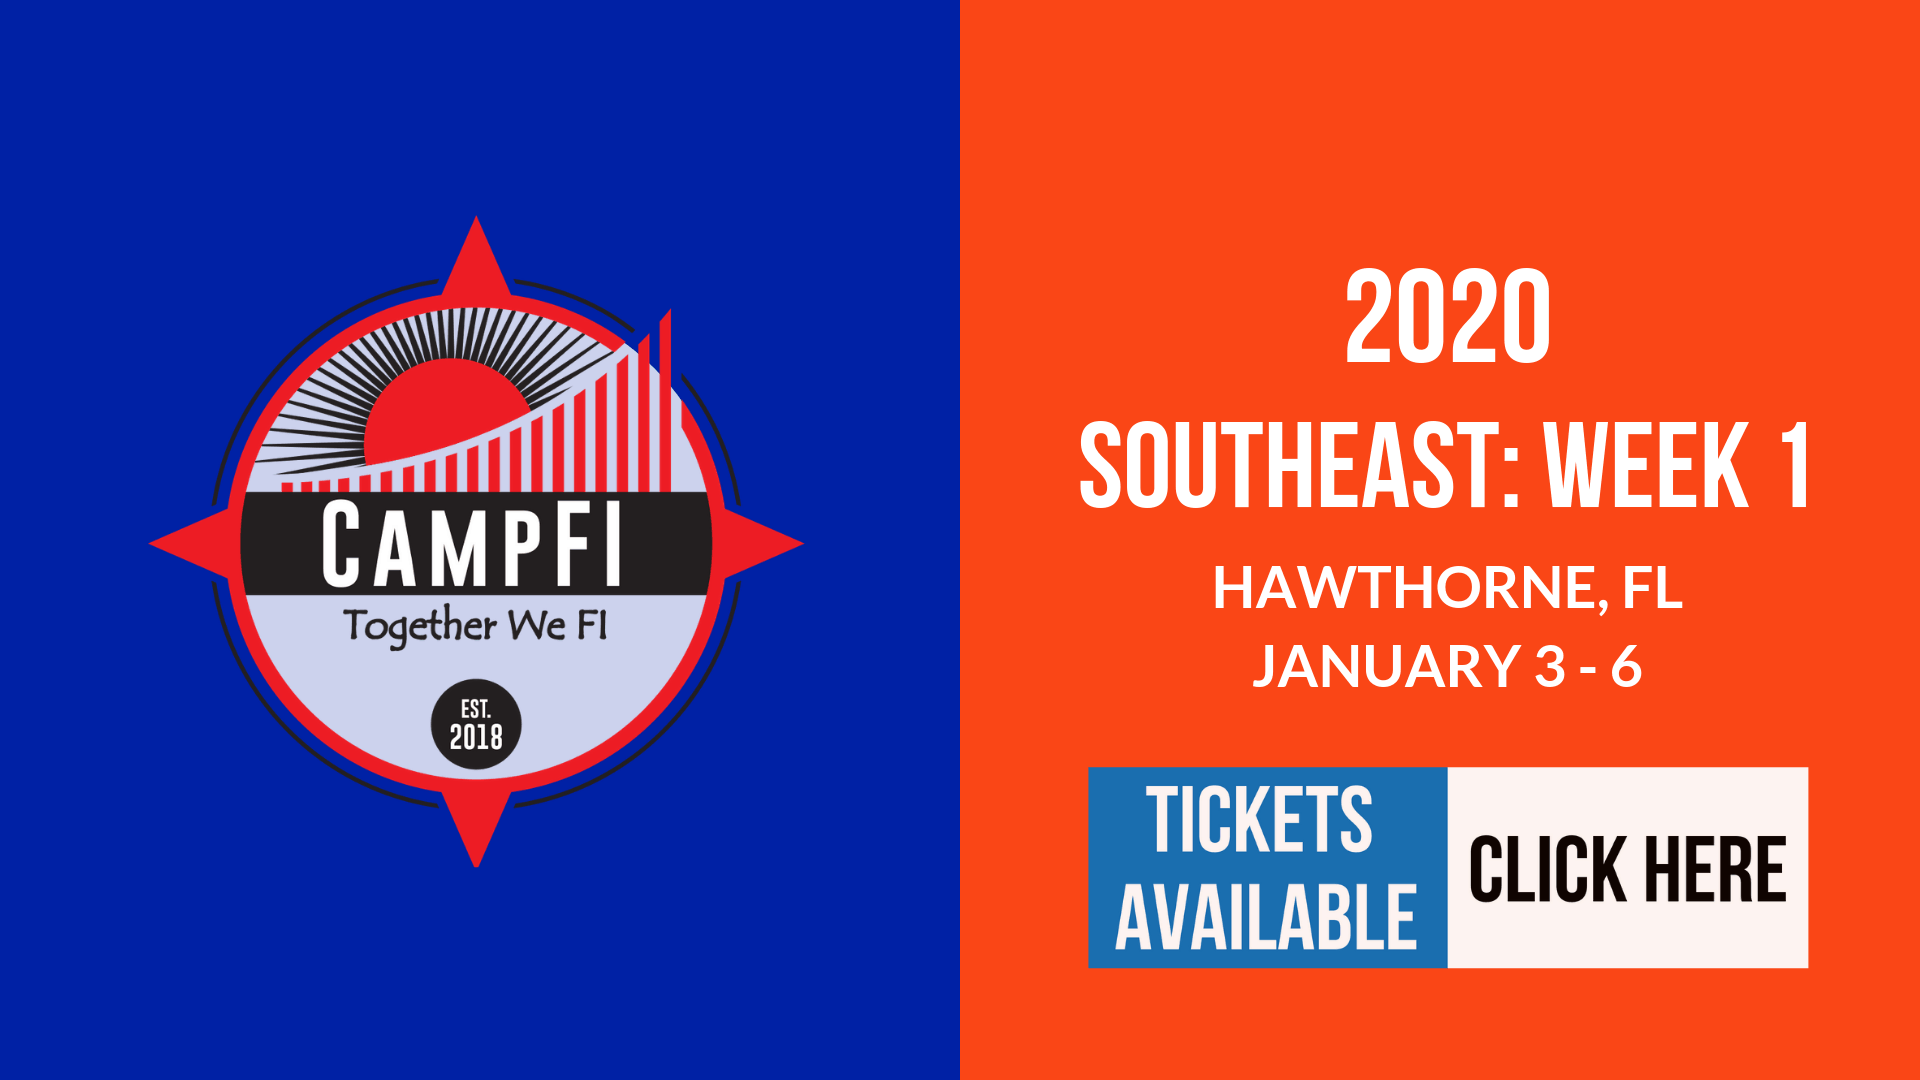 CampFI Southeast 2020 Week 1 Tickets Available